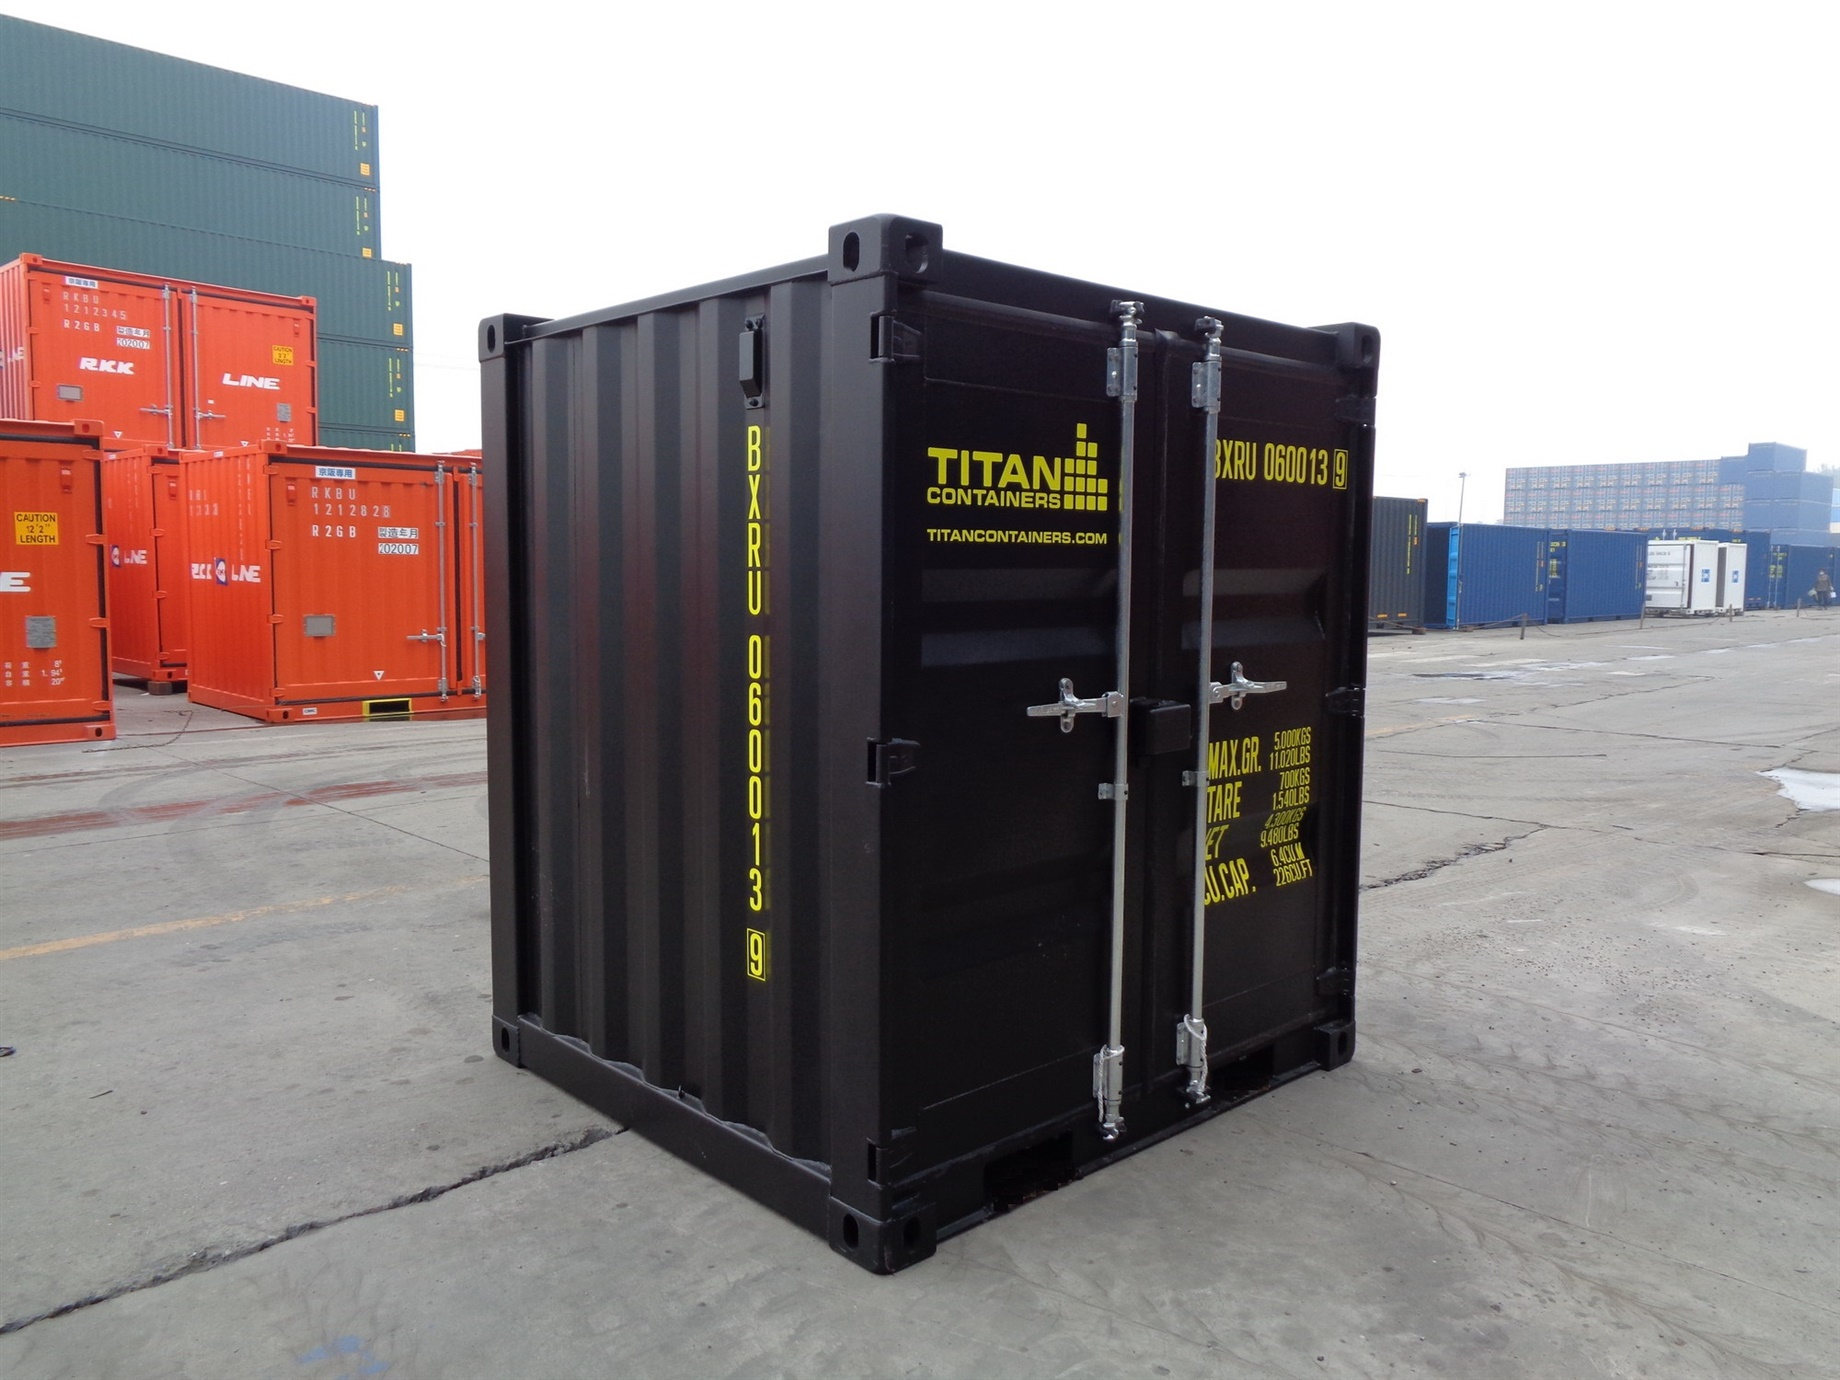 6 8 10 black closed foot storage container TITAN Shiipping Containers